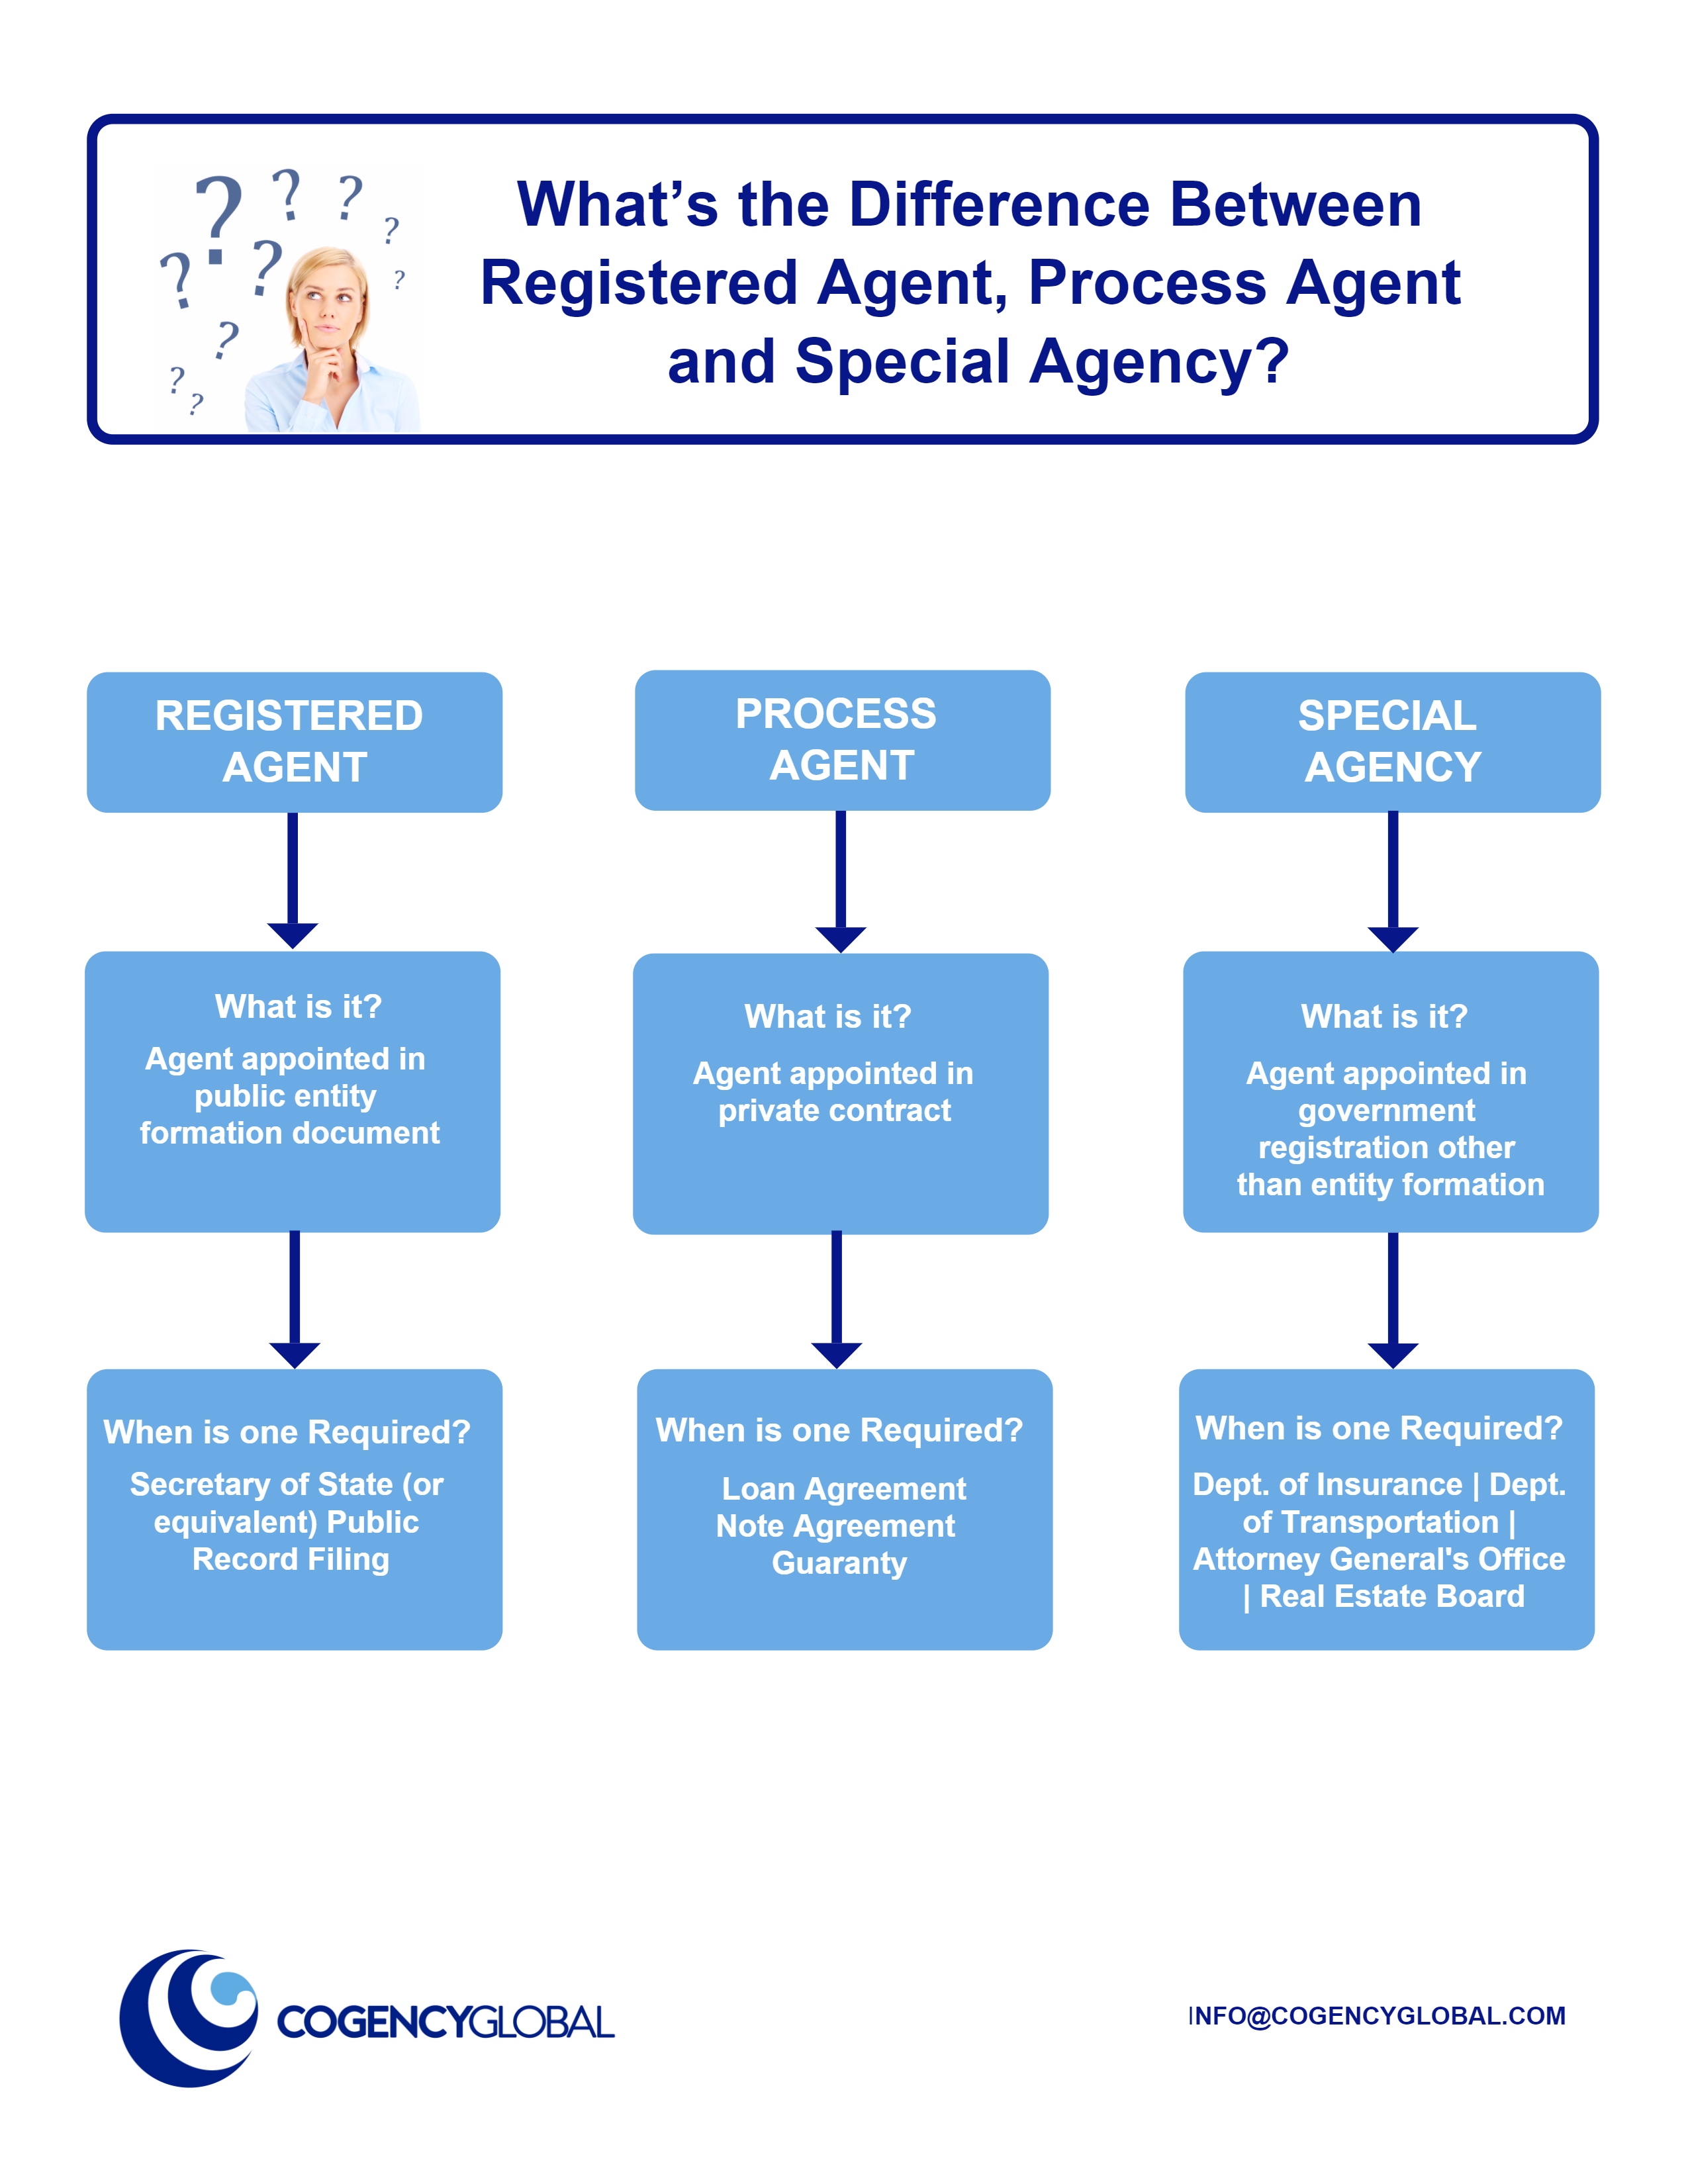 What's the Difference Between Registered Agent, Process Agent and Special Agency?